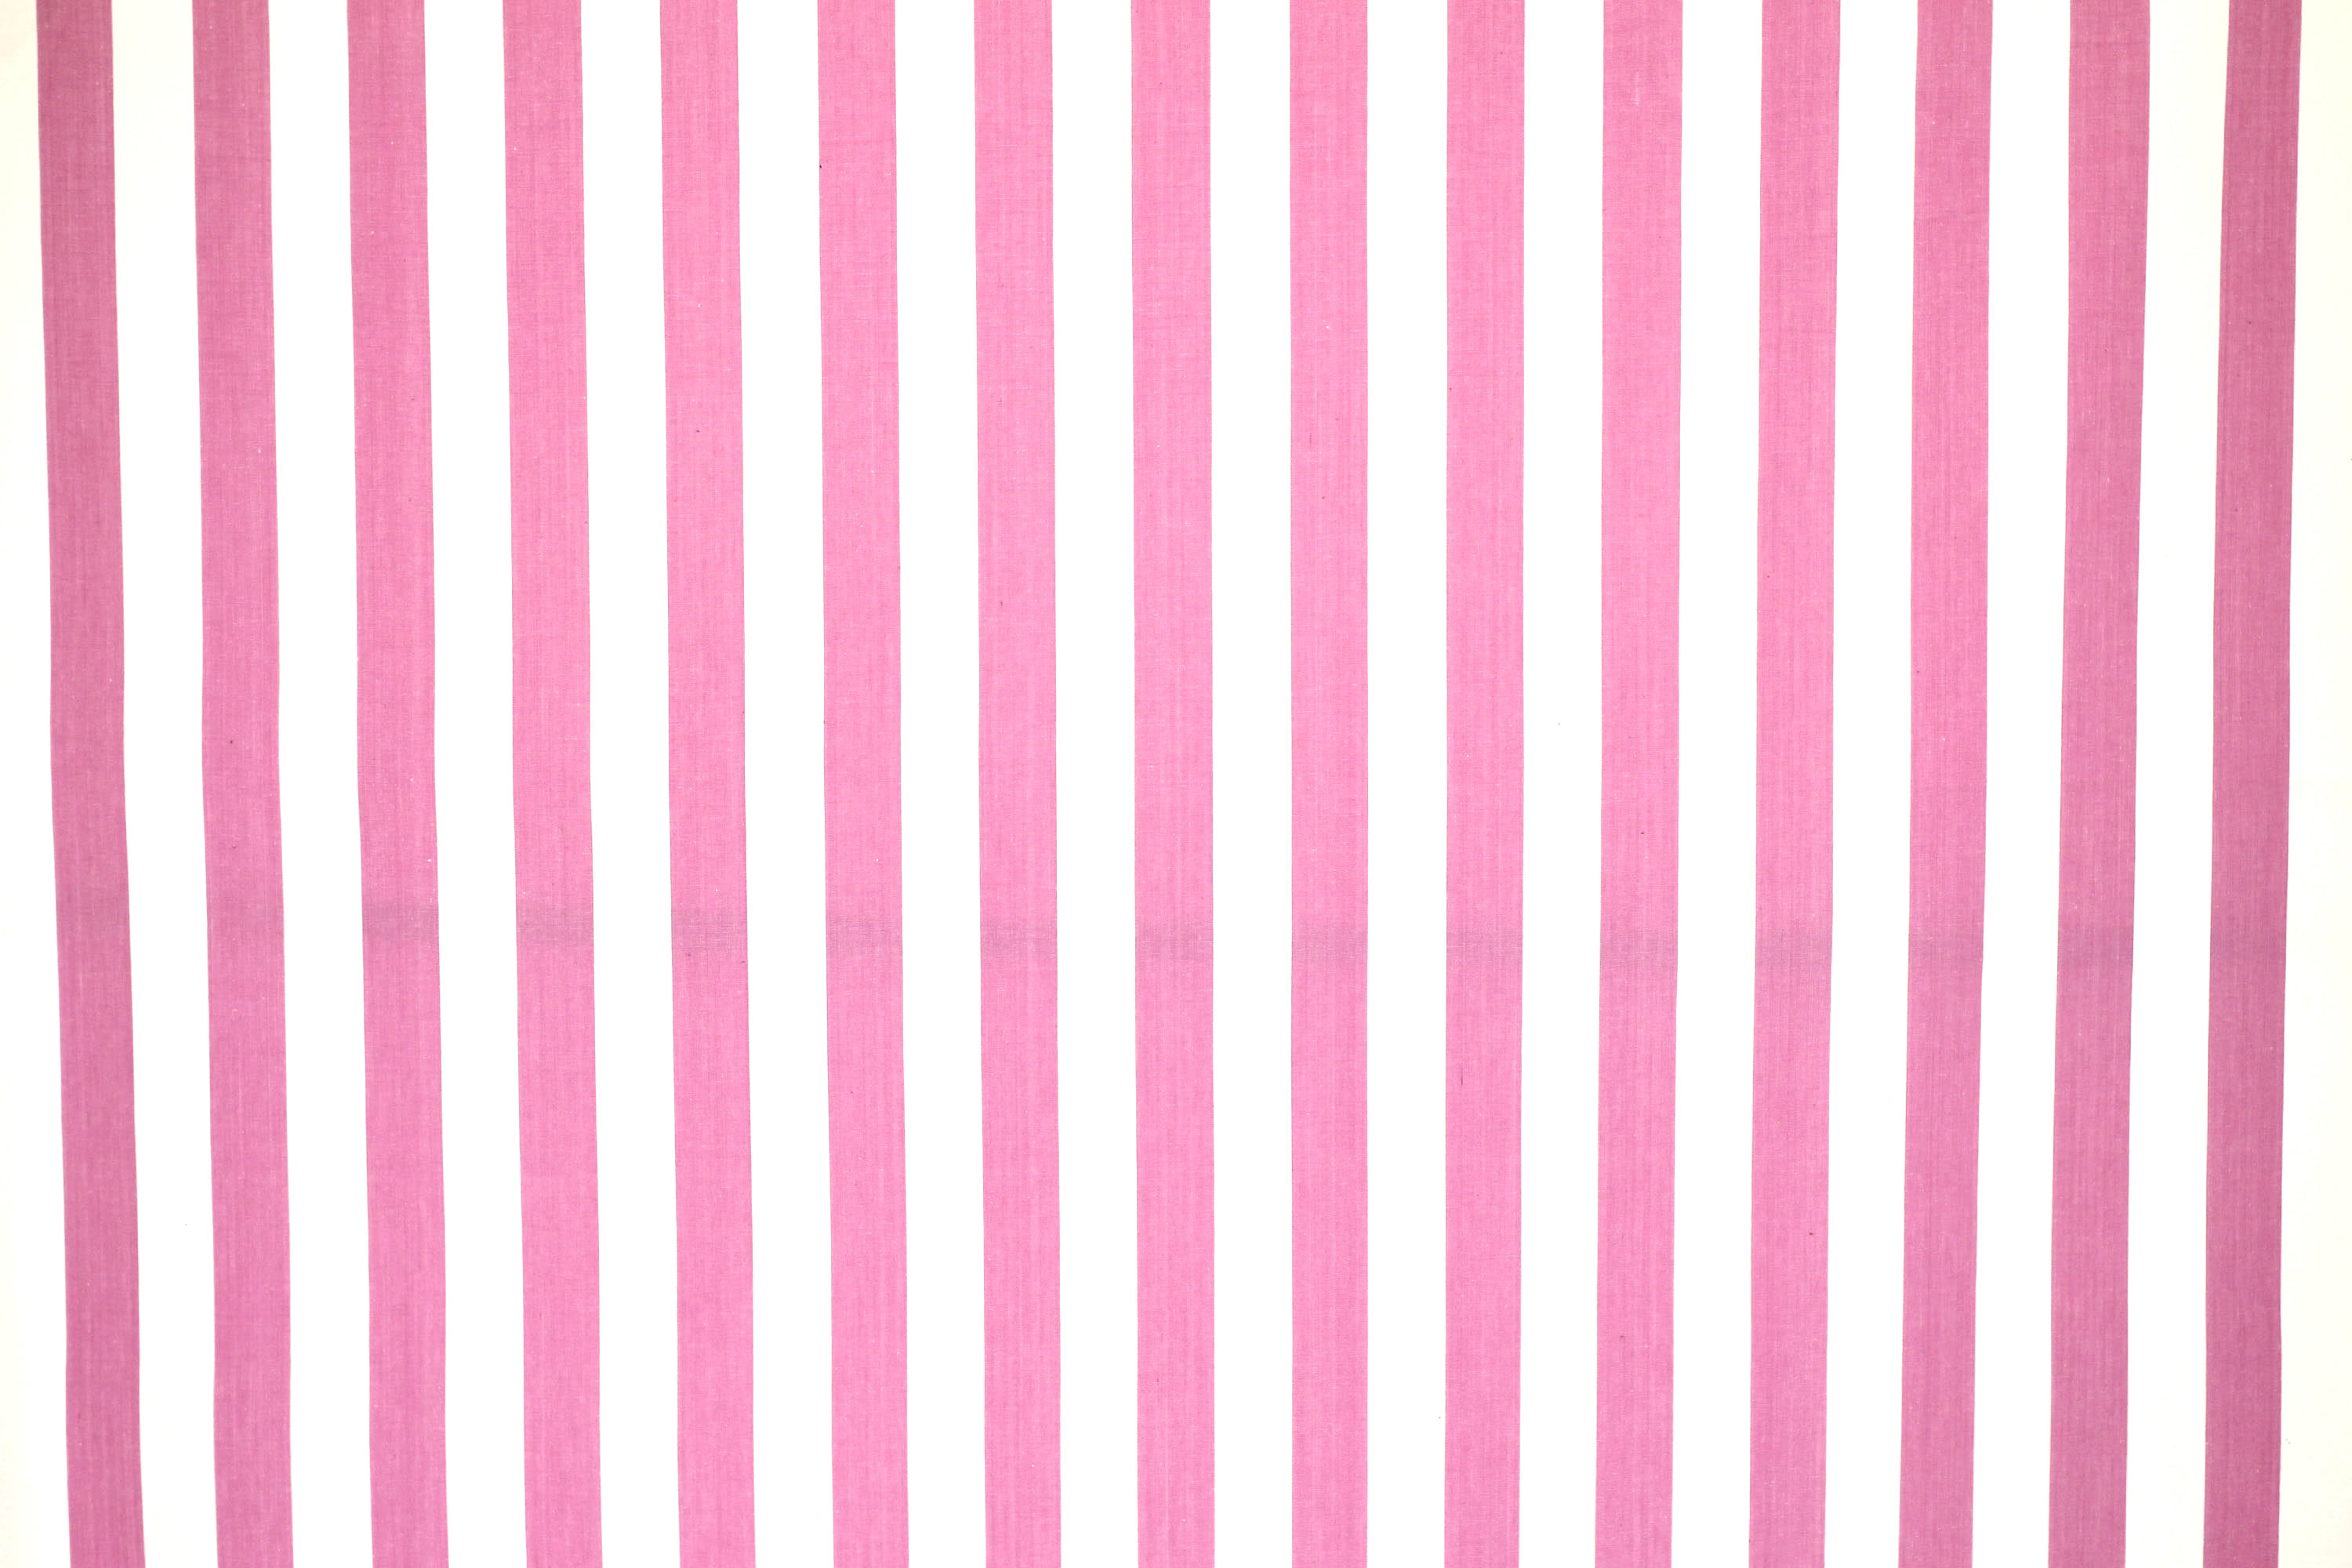 Pink Striped Fabrics | Stripe Cotton Fabrics | Discus Stripes